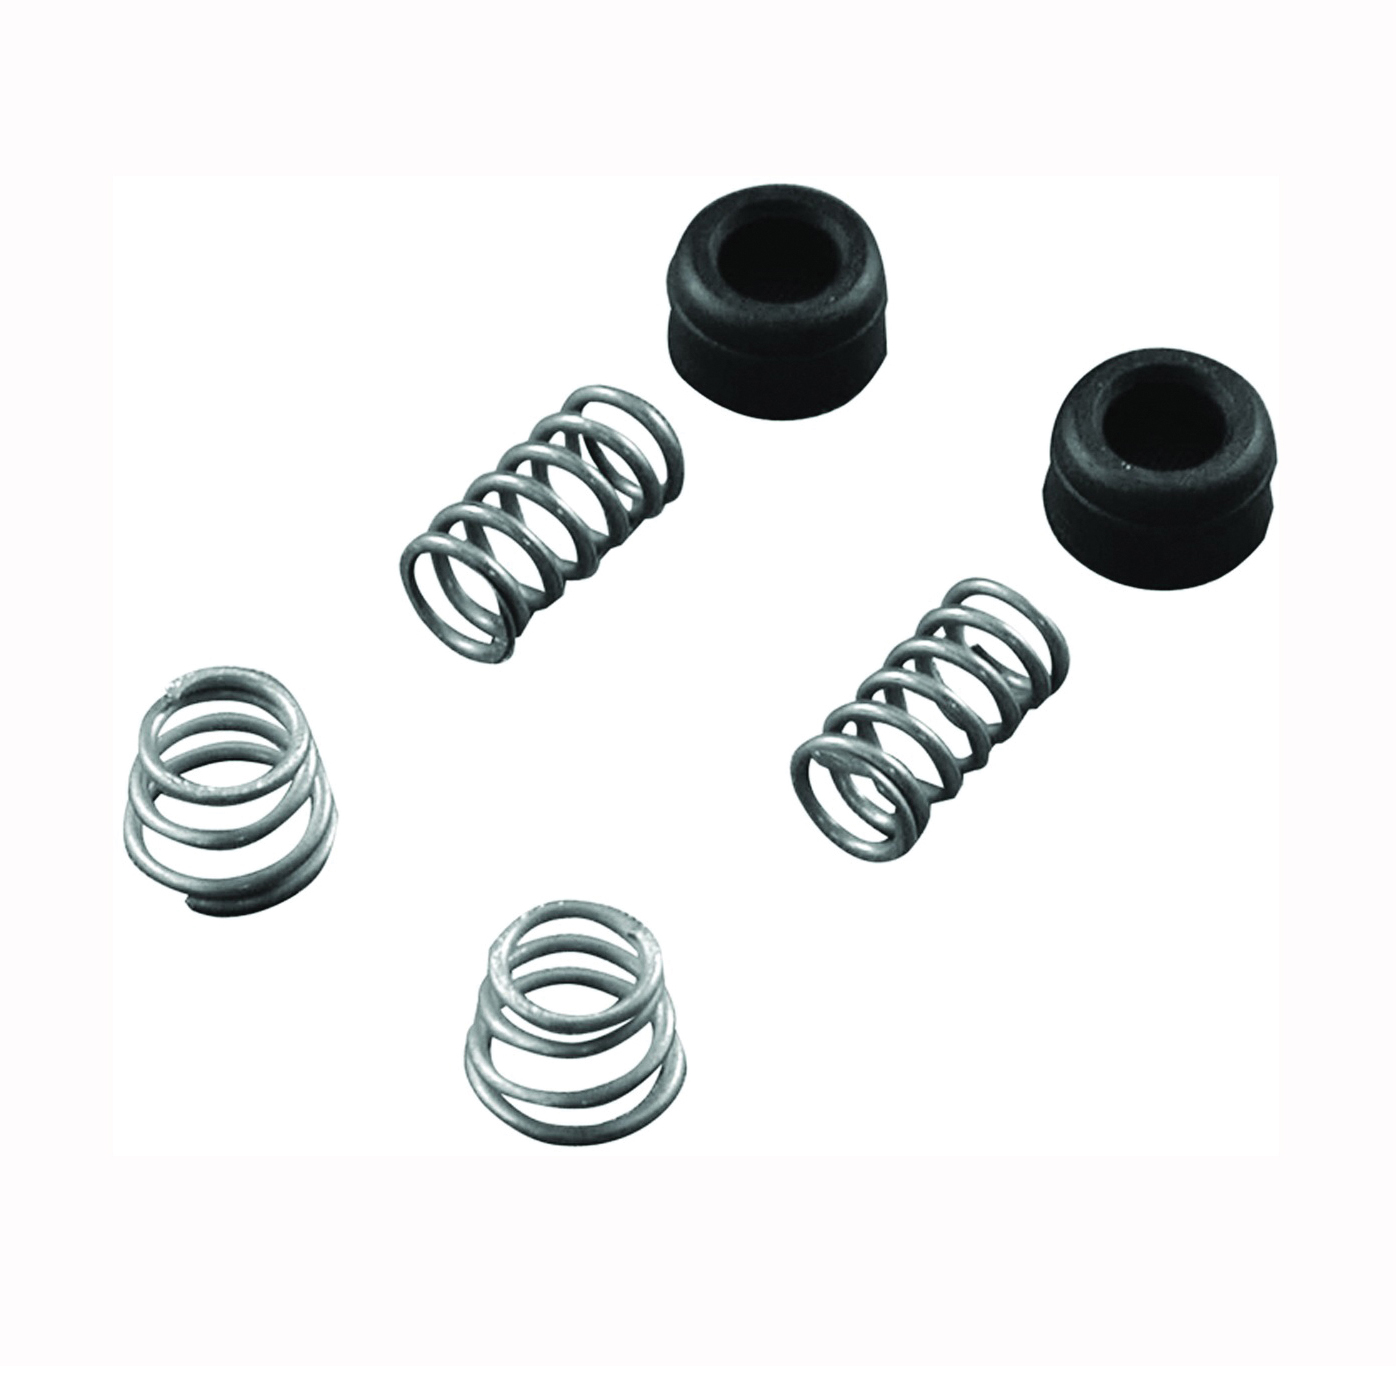 Picture of Danco DL-17 Series 88050 Seat and Spring Kit, Rubber/Stainless Steel, Black